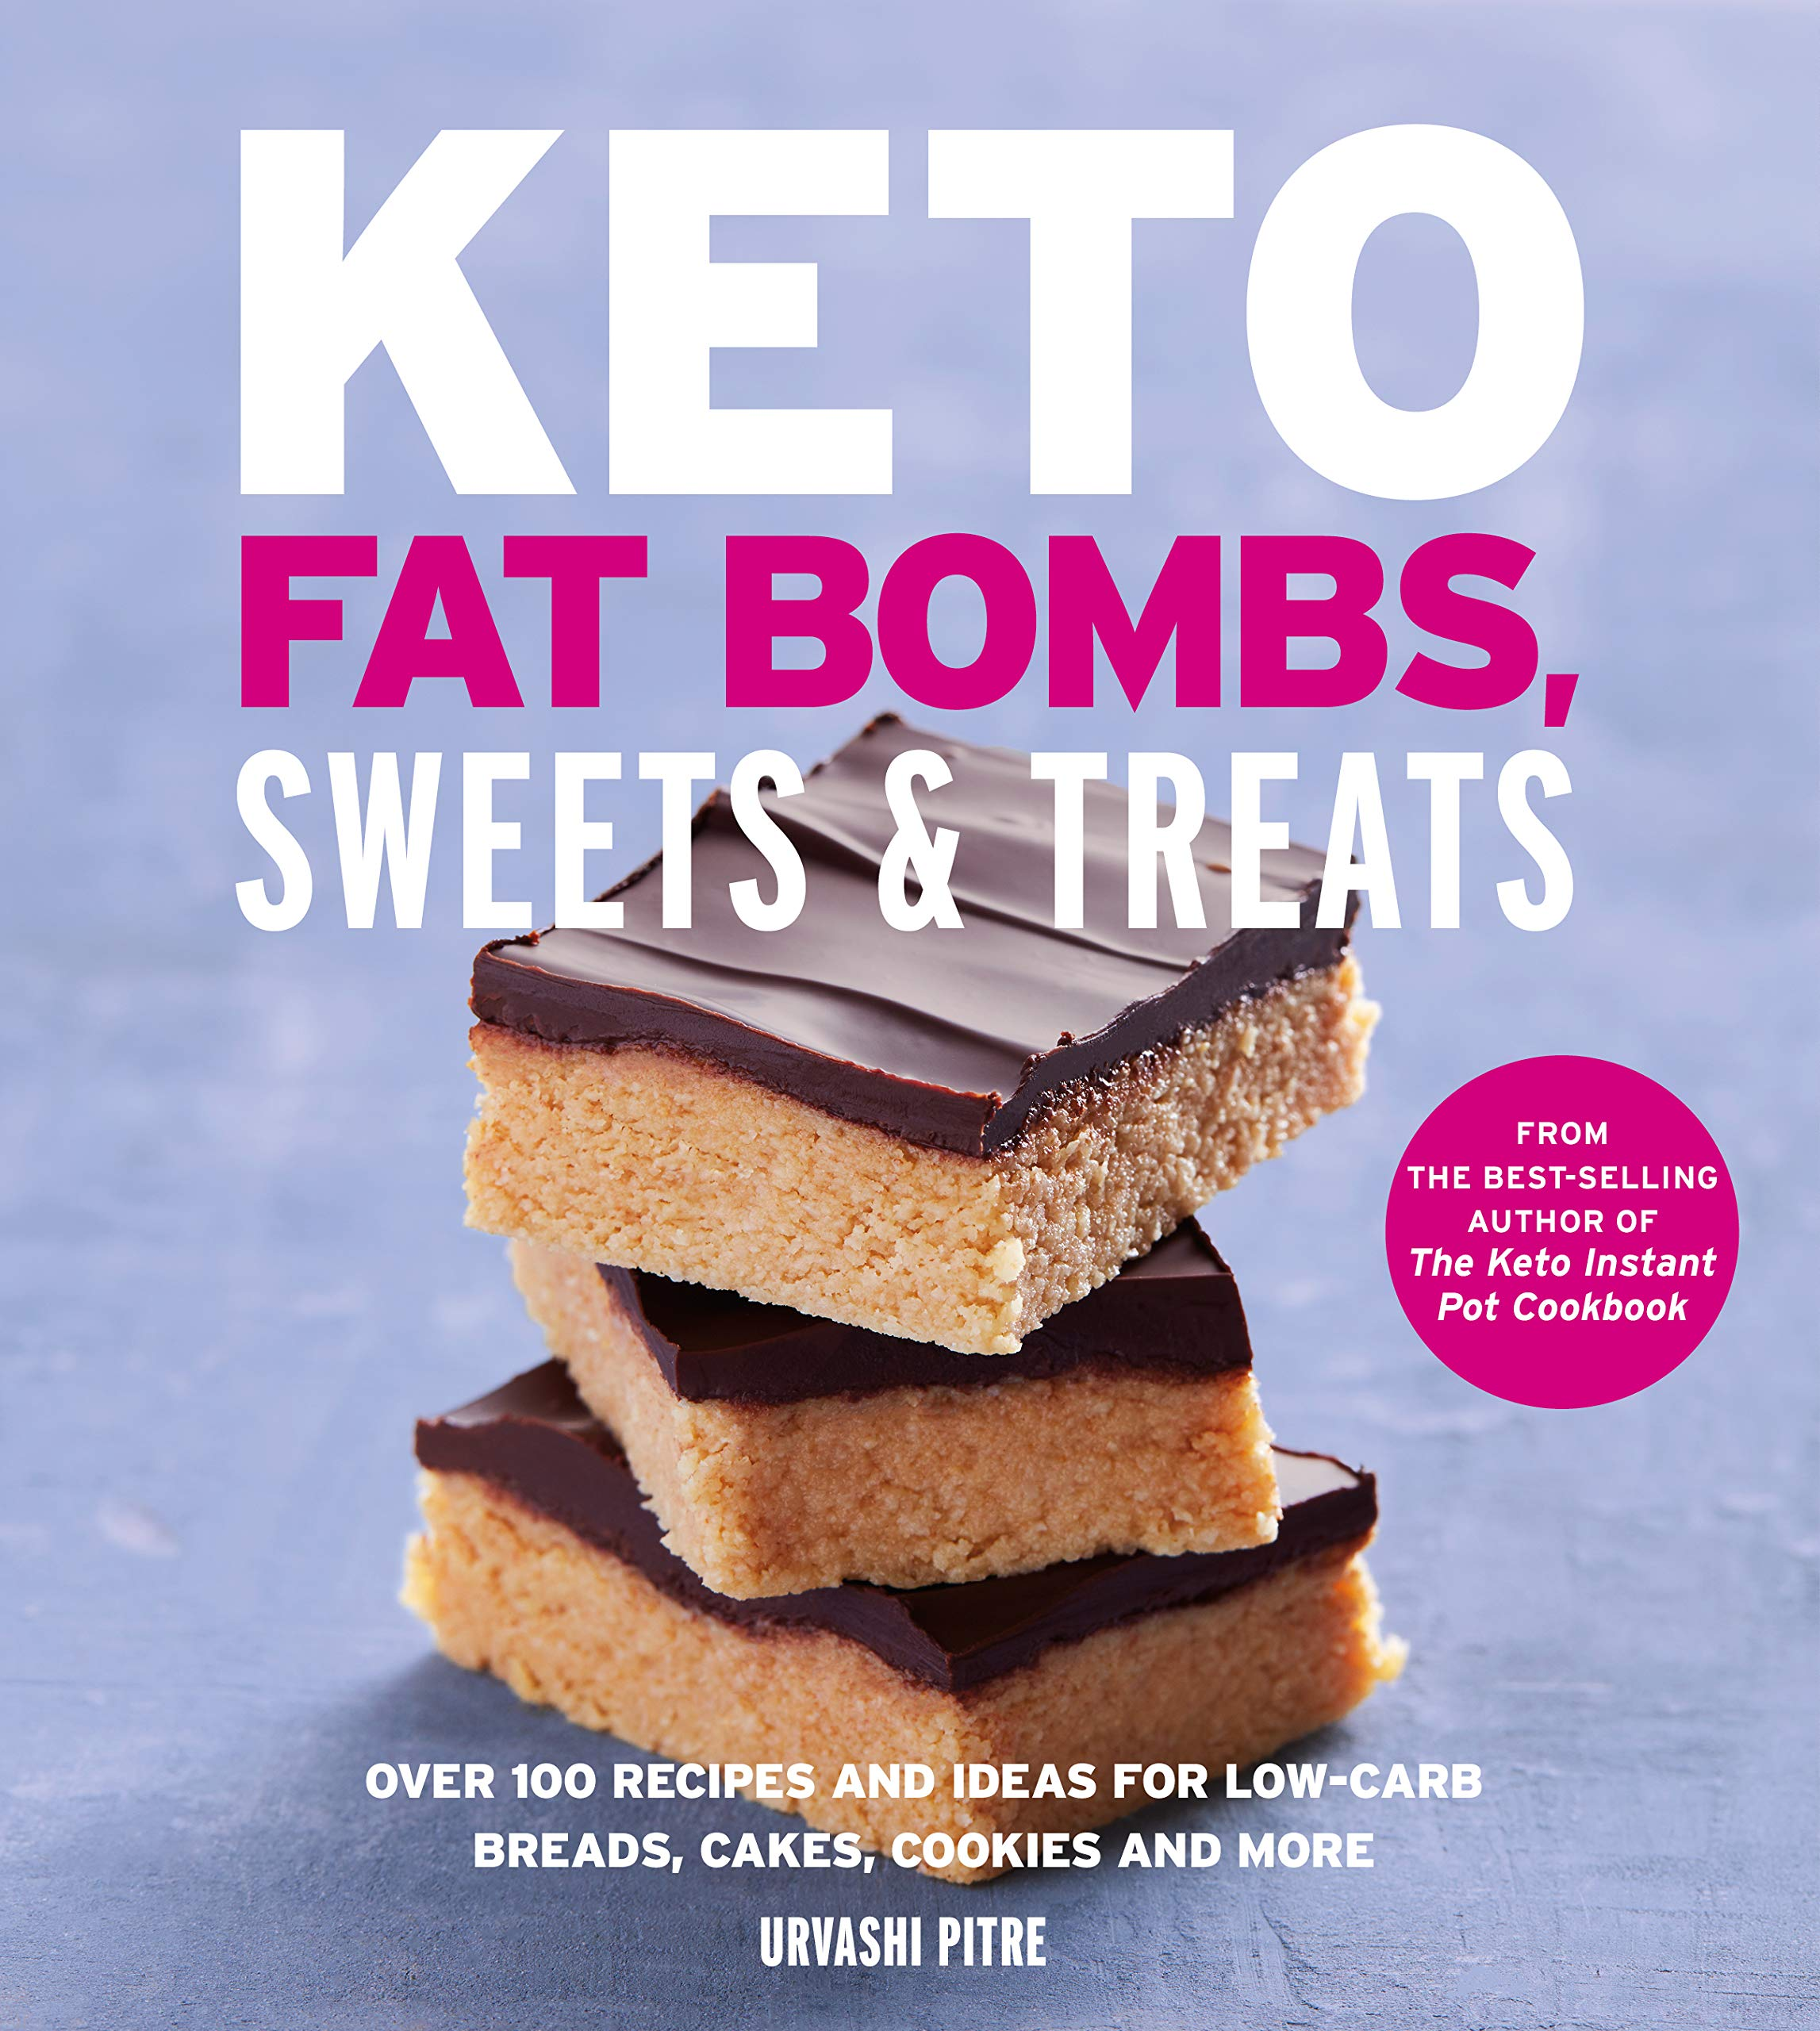 Cheap Keto-Friendly Dessert Recipes Keto Sweets  Available For Pickup